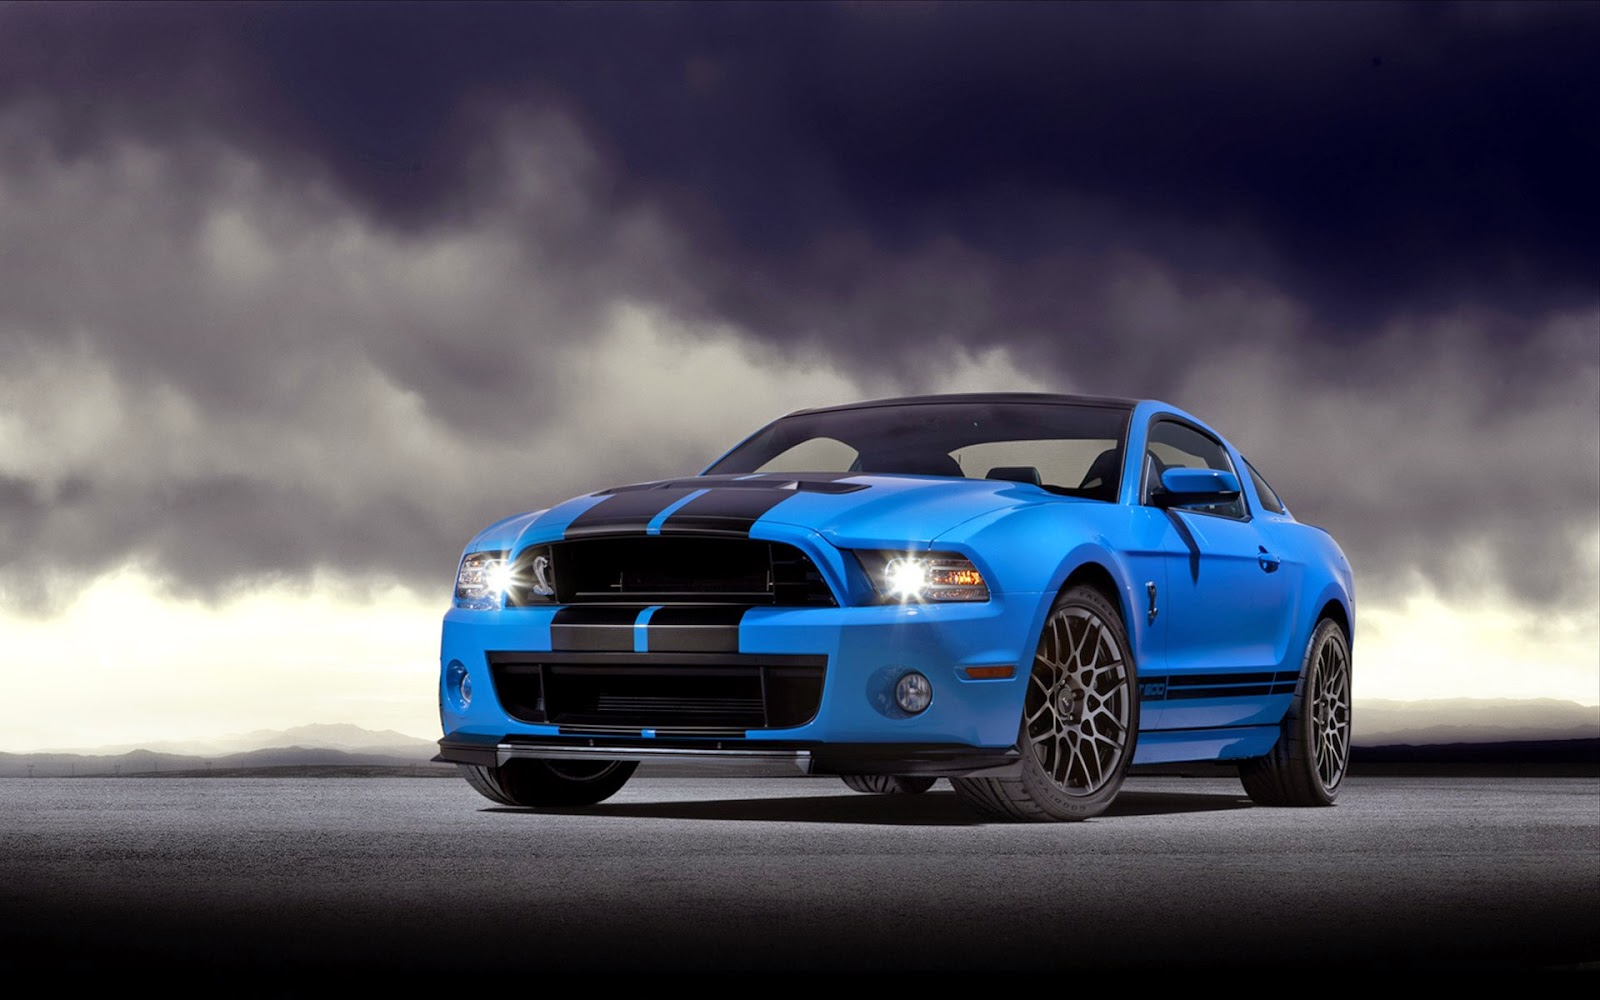 23 ford mustang shelby gt500 wallpapers hd backgrounds